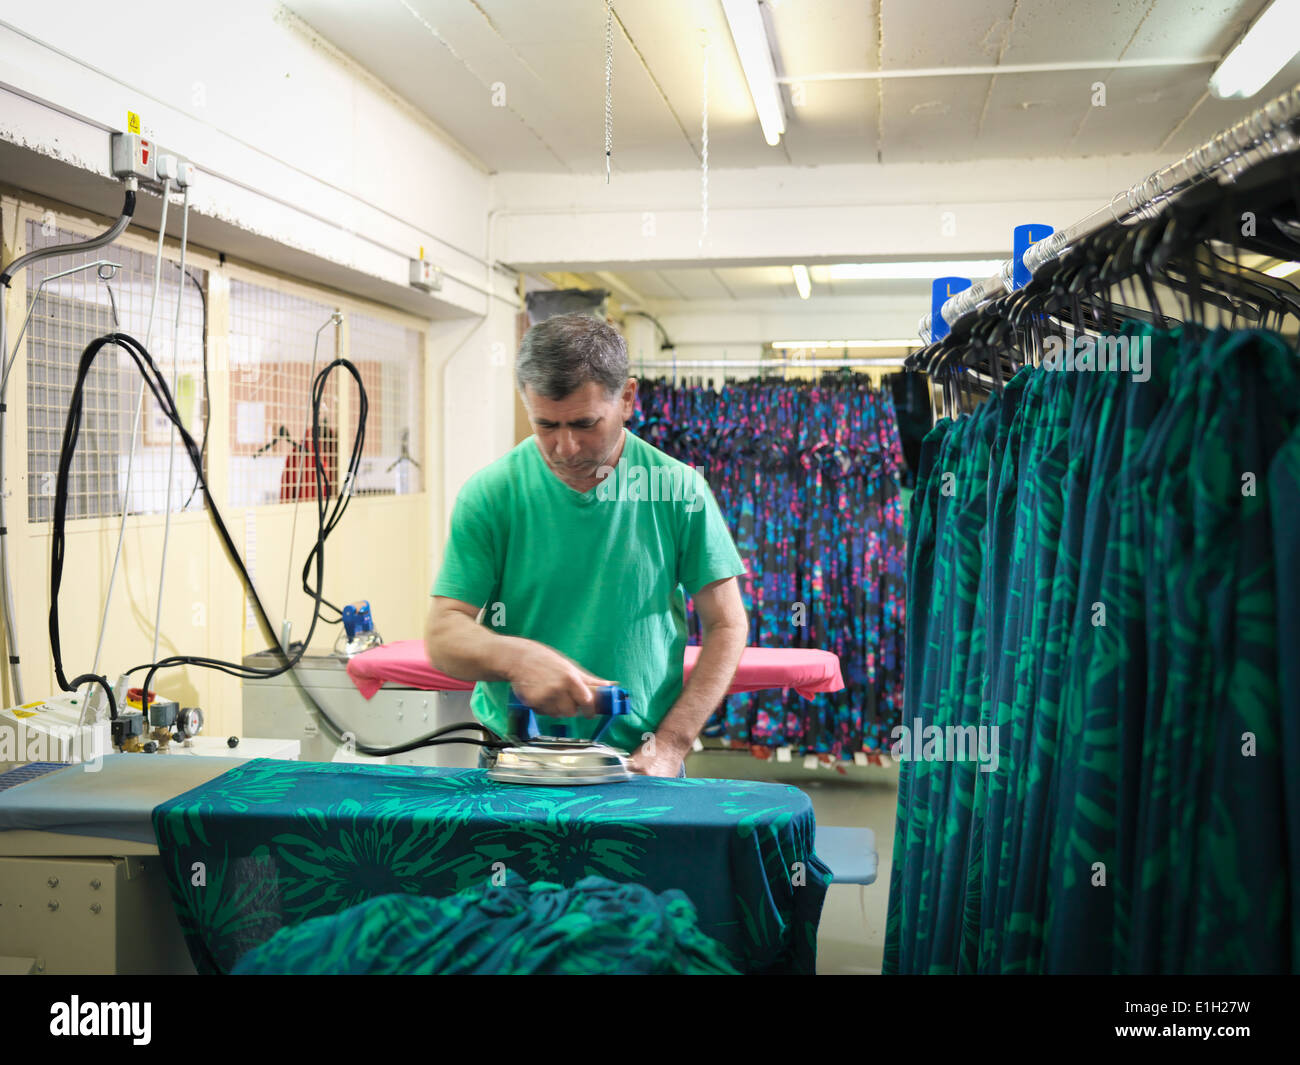 Garment worker ironing clothing in clothing factory - Stock Image